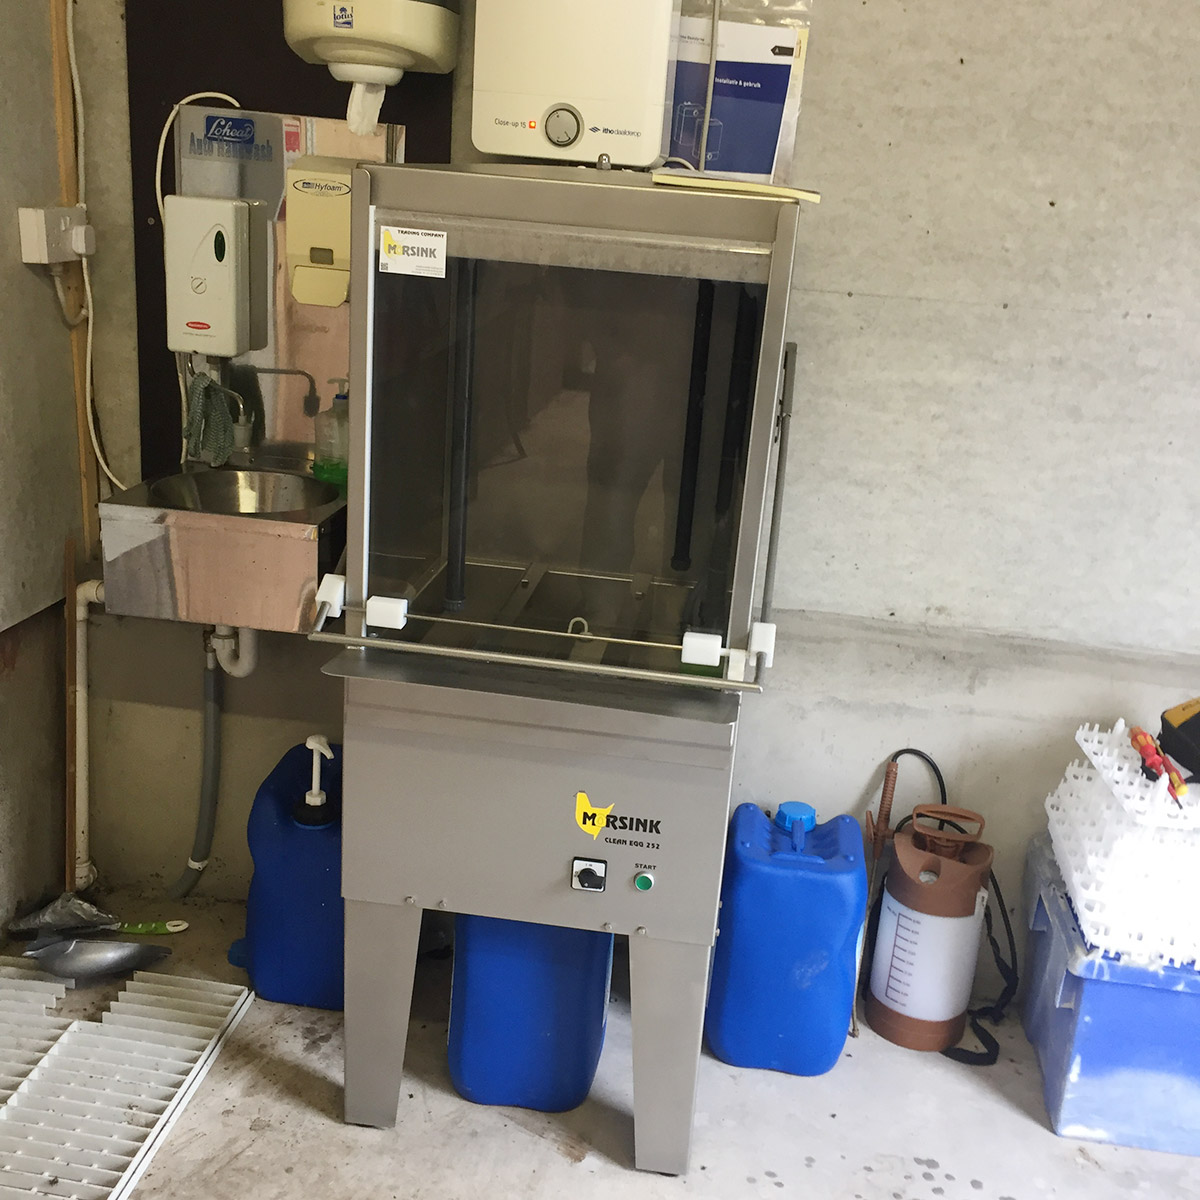 Clean Egg 252 machine